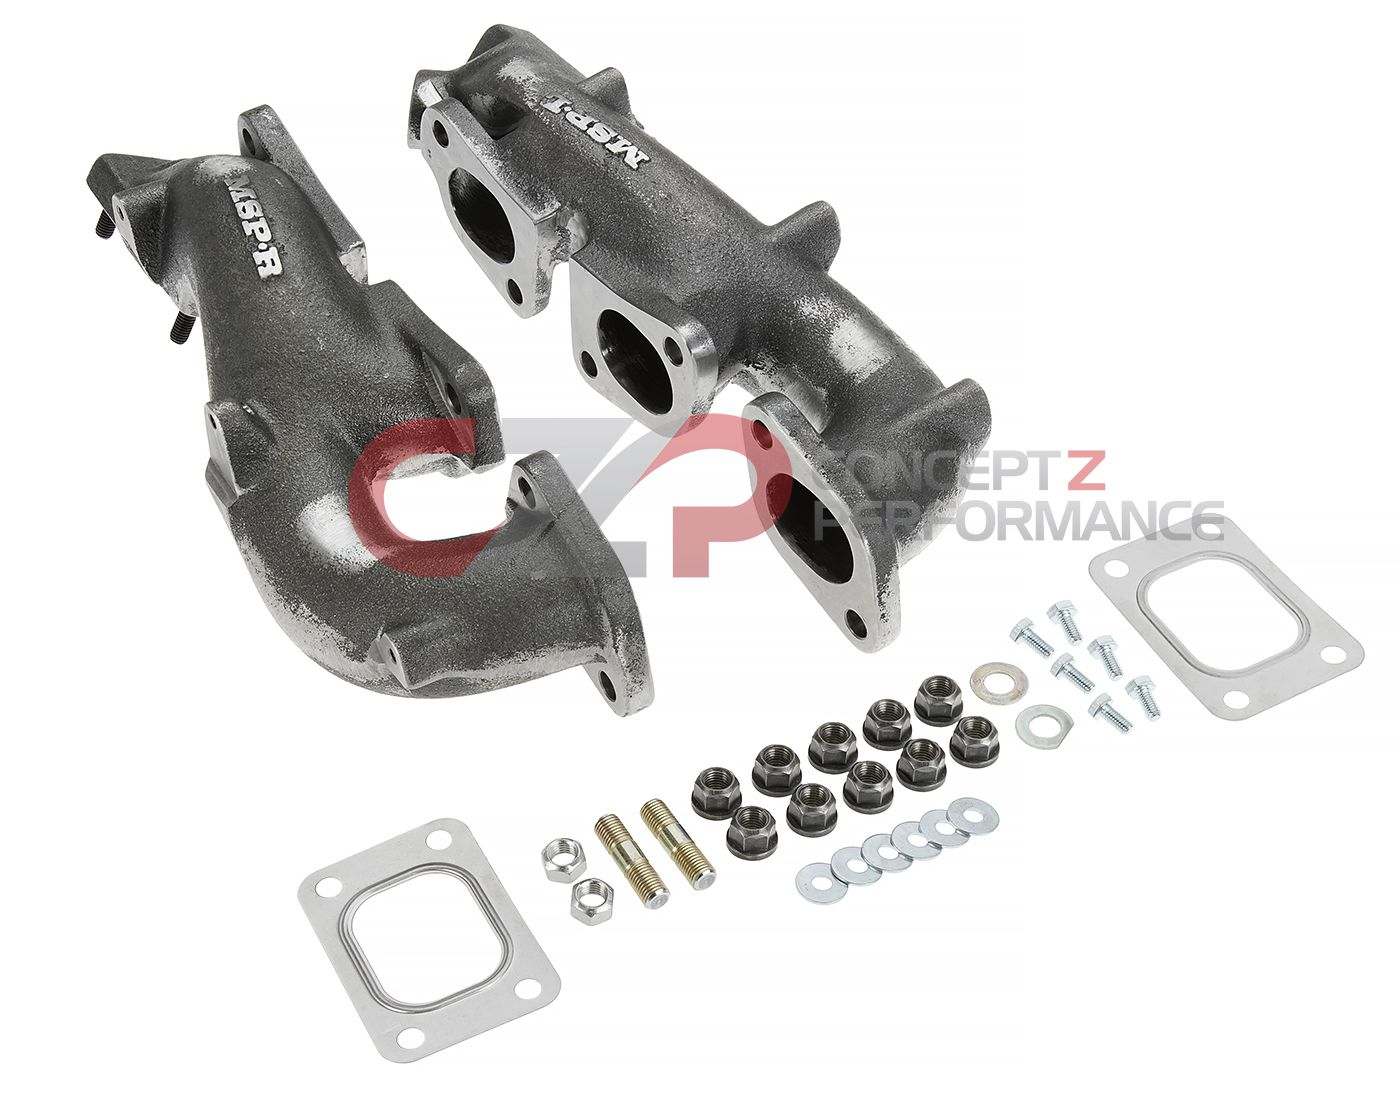 Z32 Exhaust System :: Exhaust Manifolds & Headers - Concept